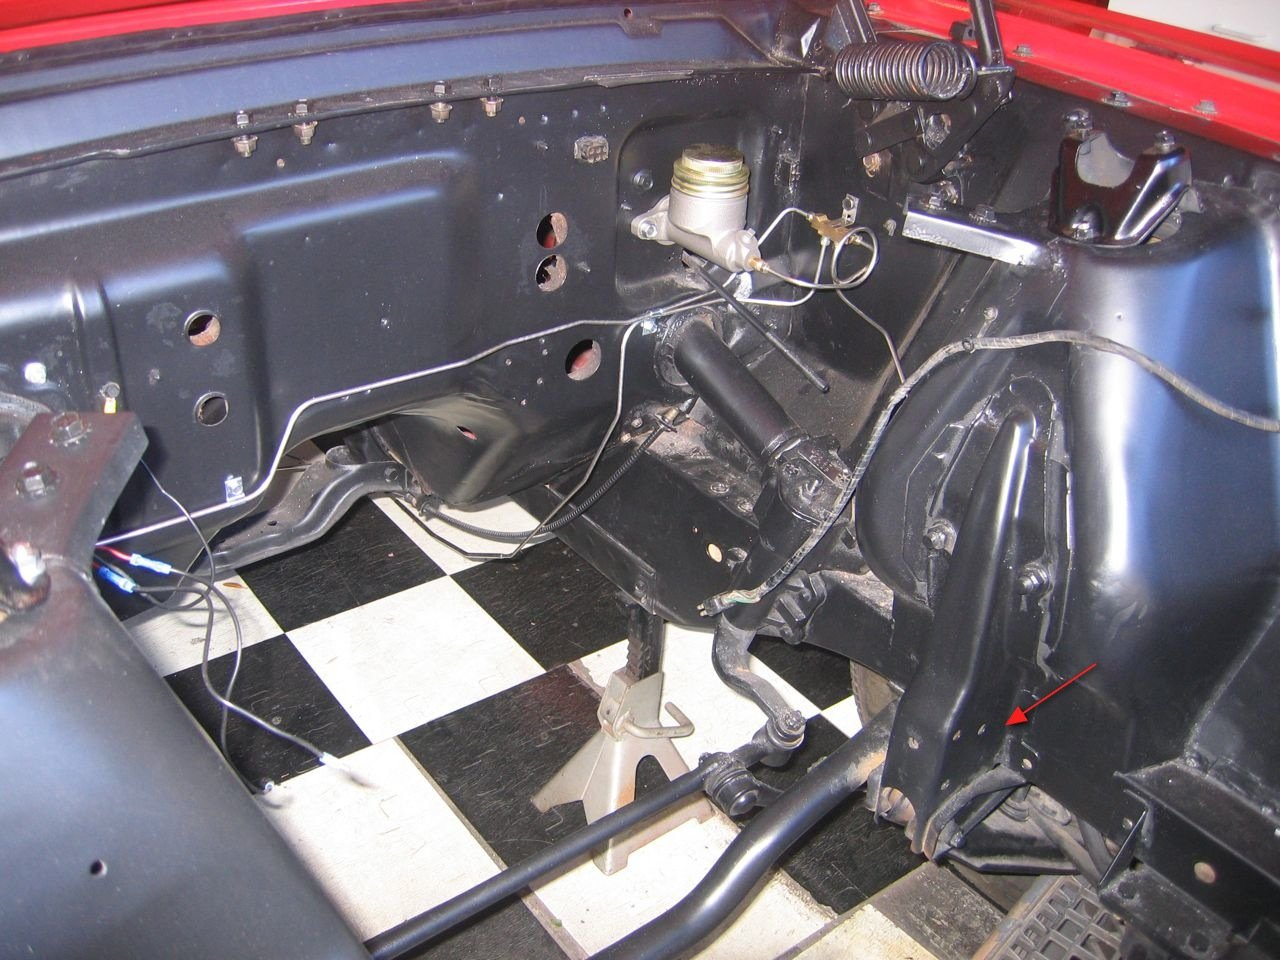 Maxresdefault moreover Mustang Assembly moreover D Mustang Exhaust Img additionally D Pictures Front Engine Img additionally Img. on 1965 mustang diagram